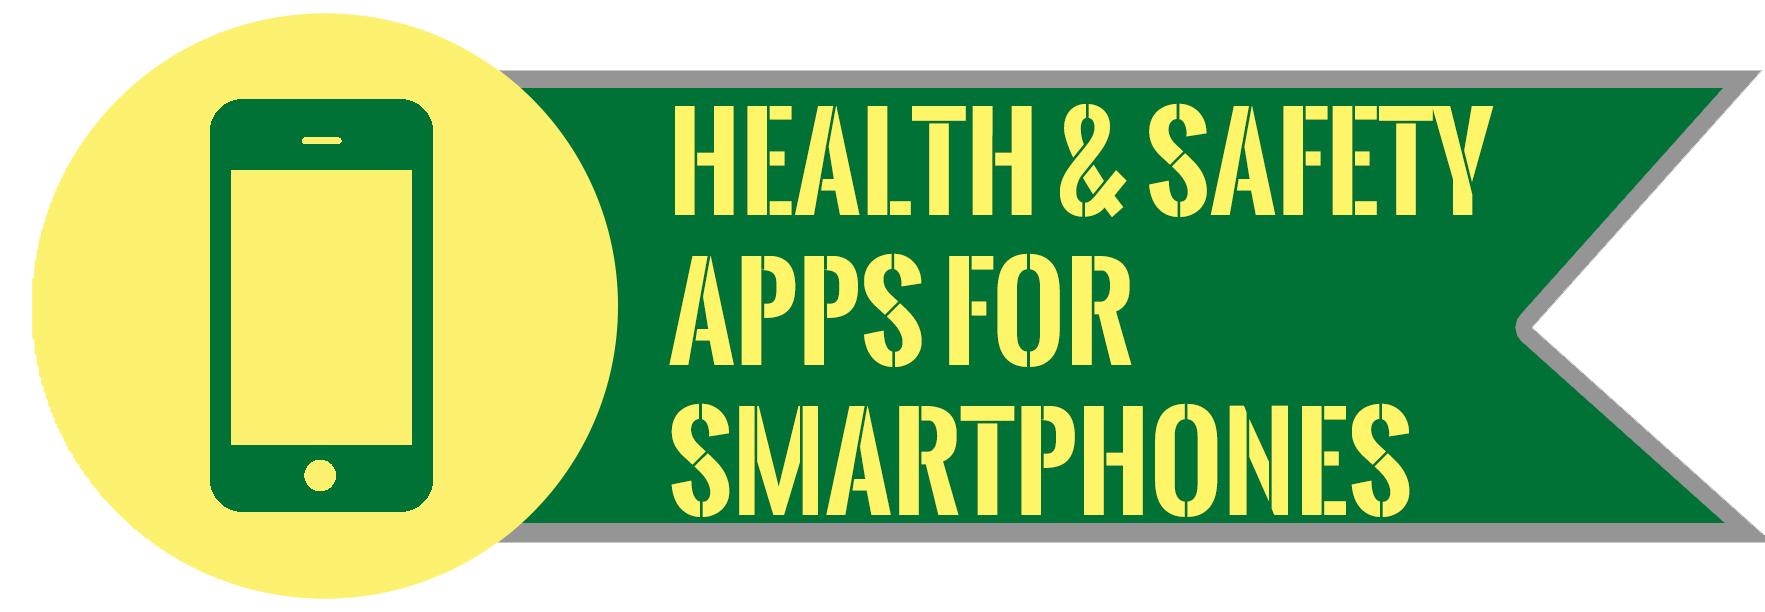 apps-for-smartphones-1-768x266